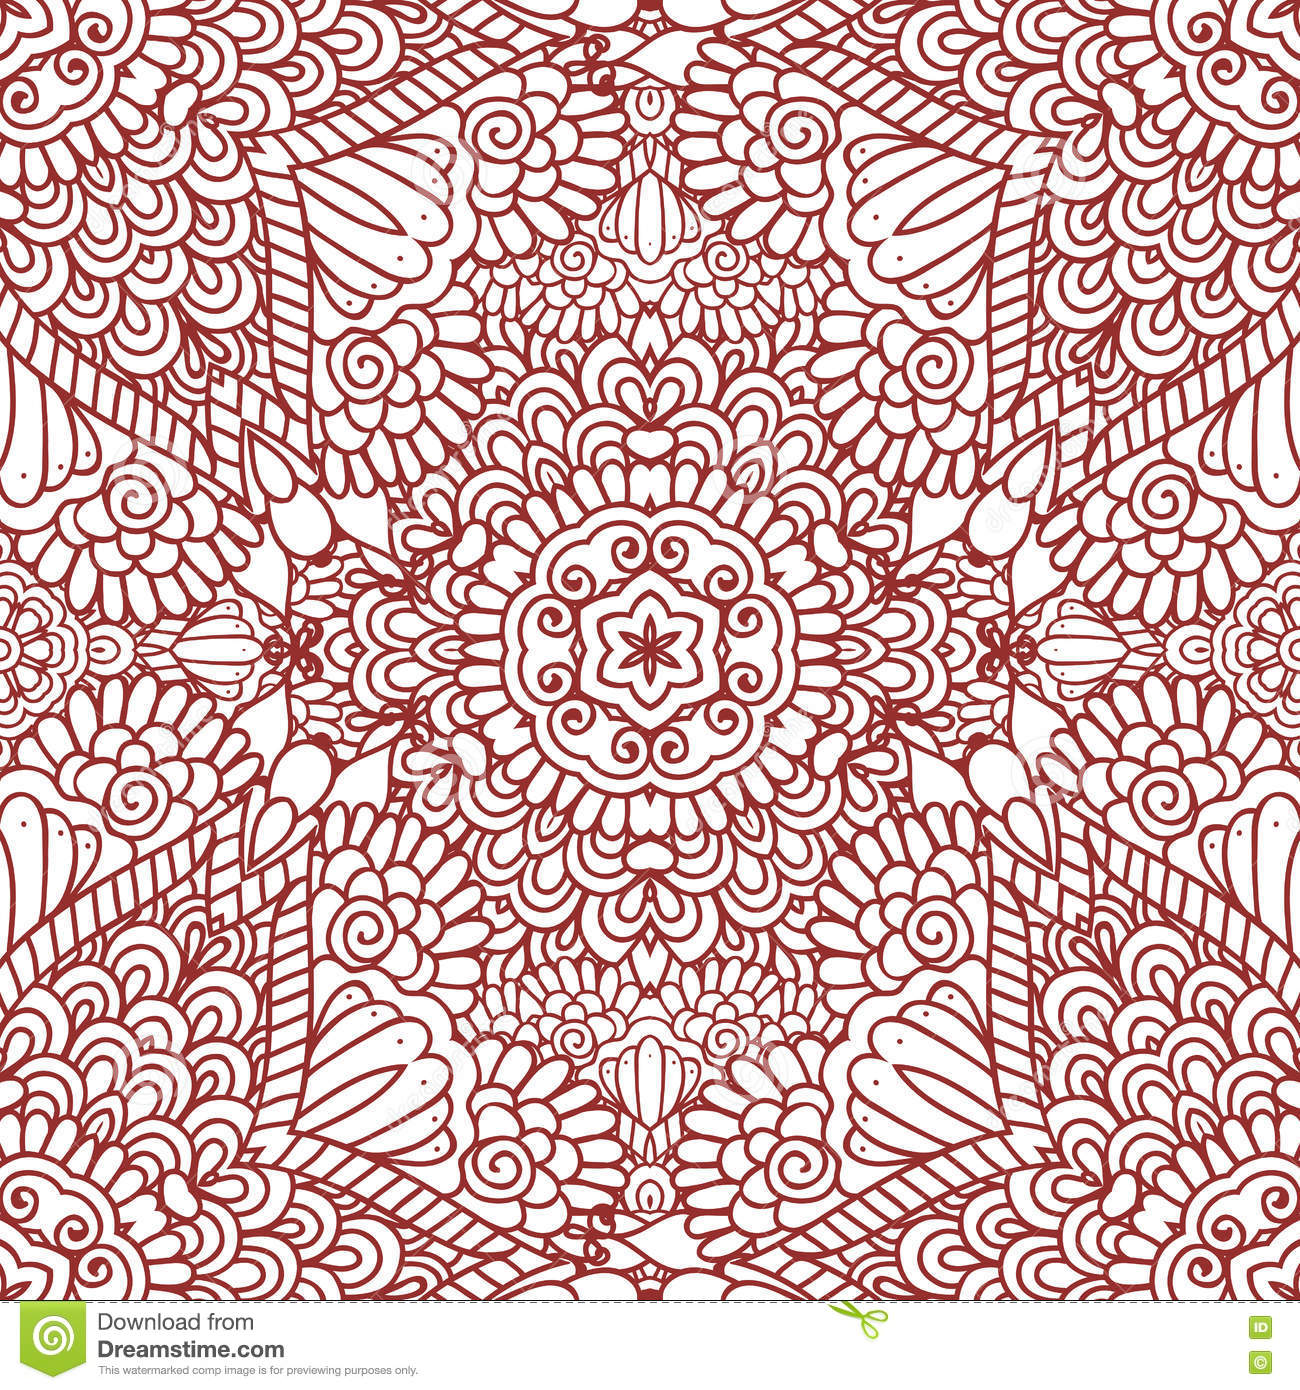 17 Best Images About Paper Cones On Pinterest Auto Electrical Wiring Panasonic Diagram Cq C5405u How To Do Henna Designs